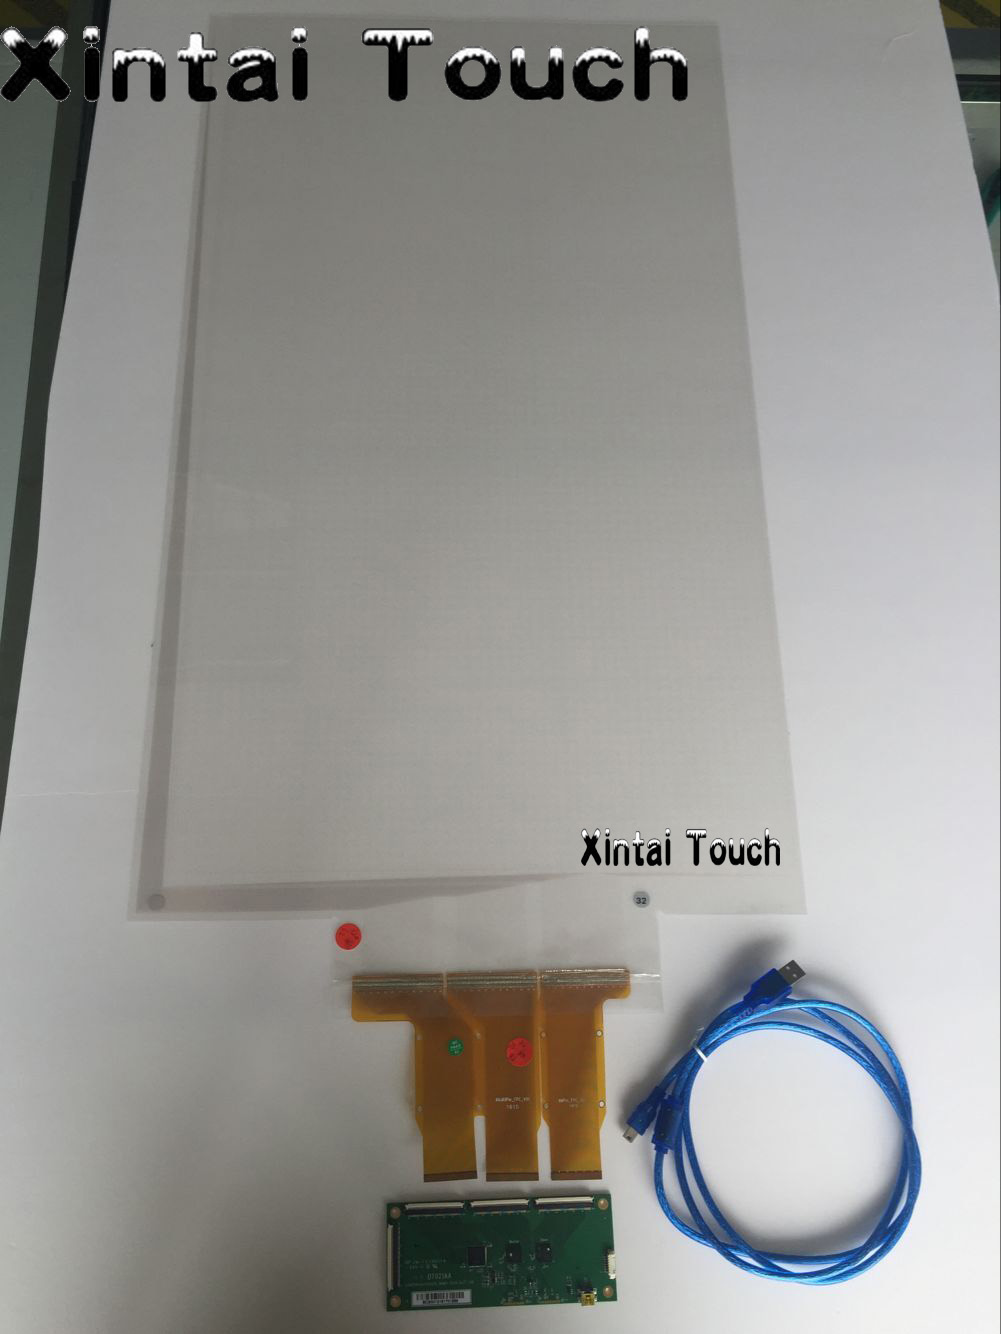 On sale! lowest price 37 Interactive Touch Screen Foil Film, 10 Points Touch Foil for touch kiosk, table etc on sale best price 50 real 4 points usb multi interactive foil touch film through glass shop window for touch kiosk table etc